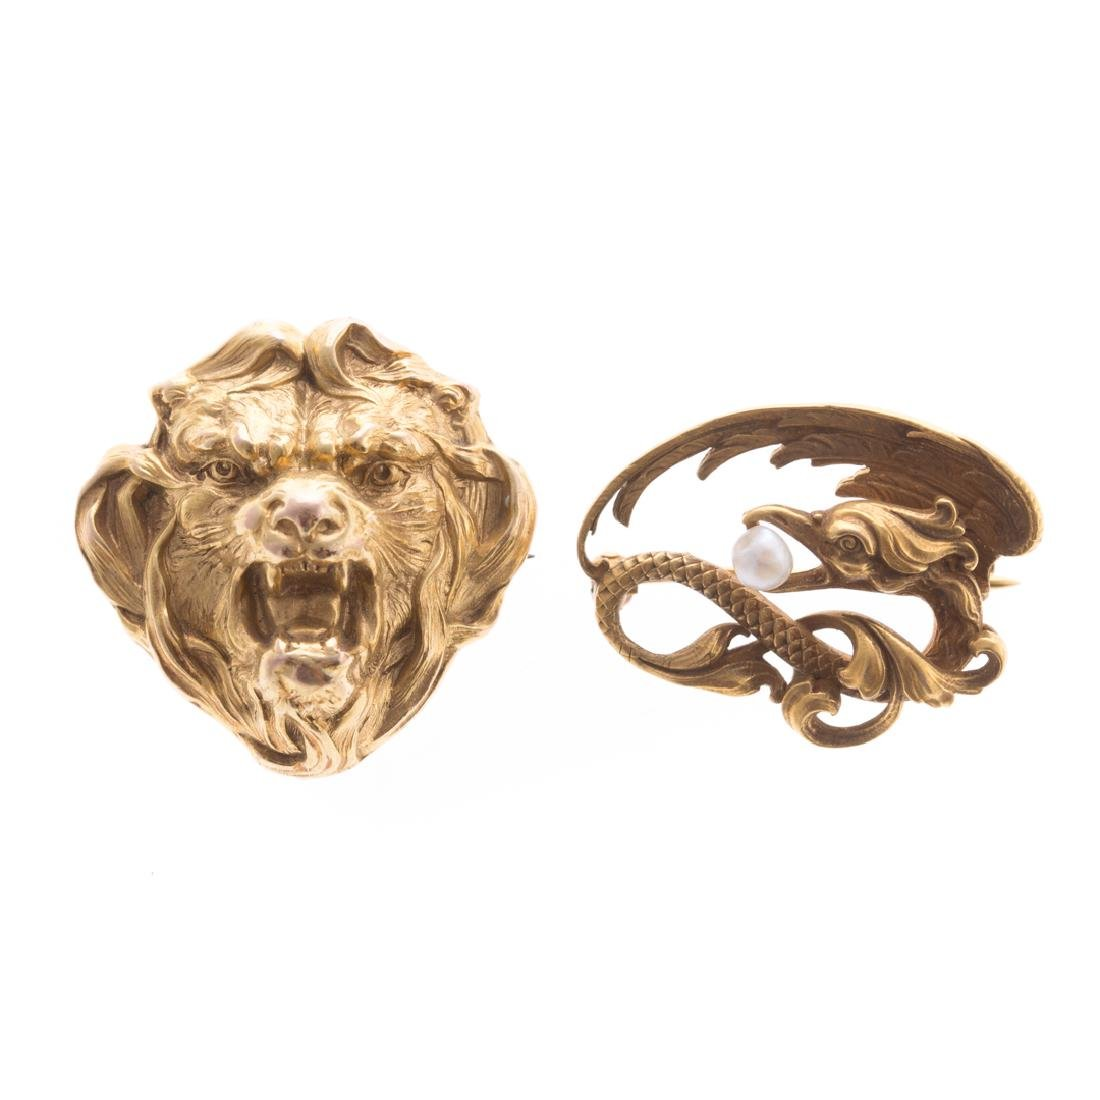 A Pair of 14K Art Nouveau Brooches